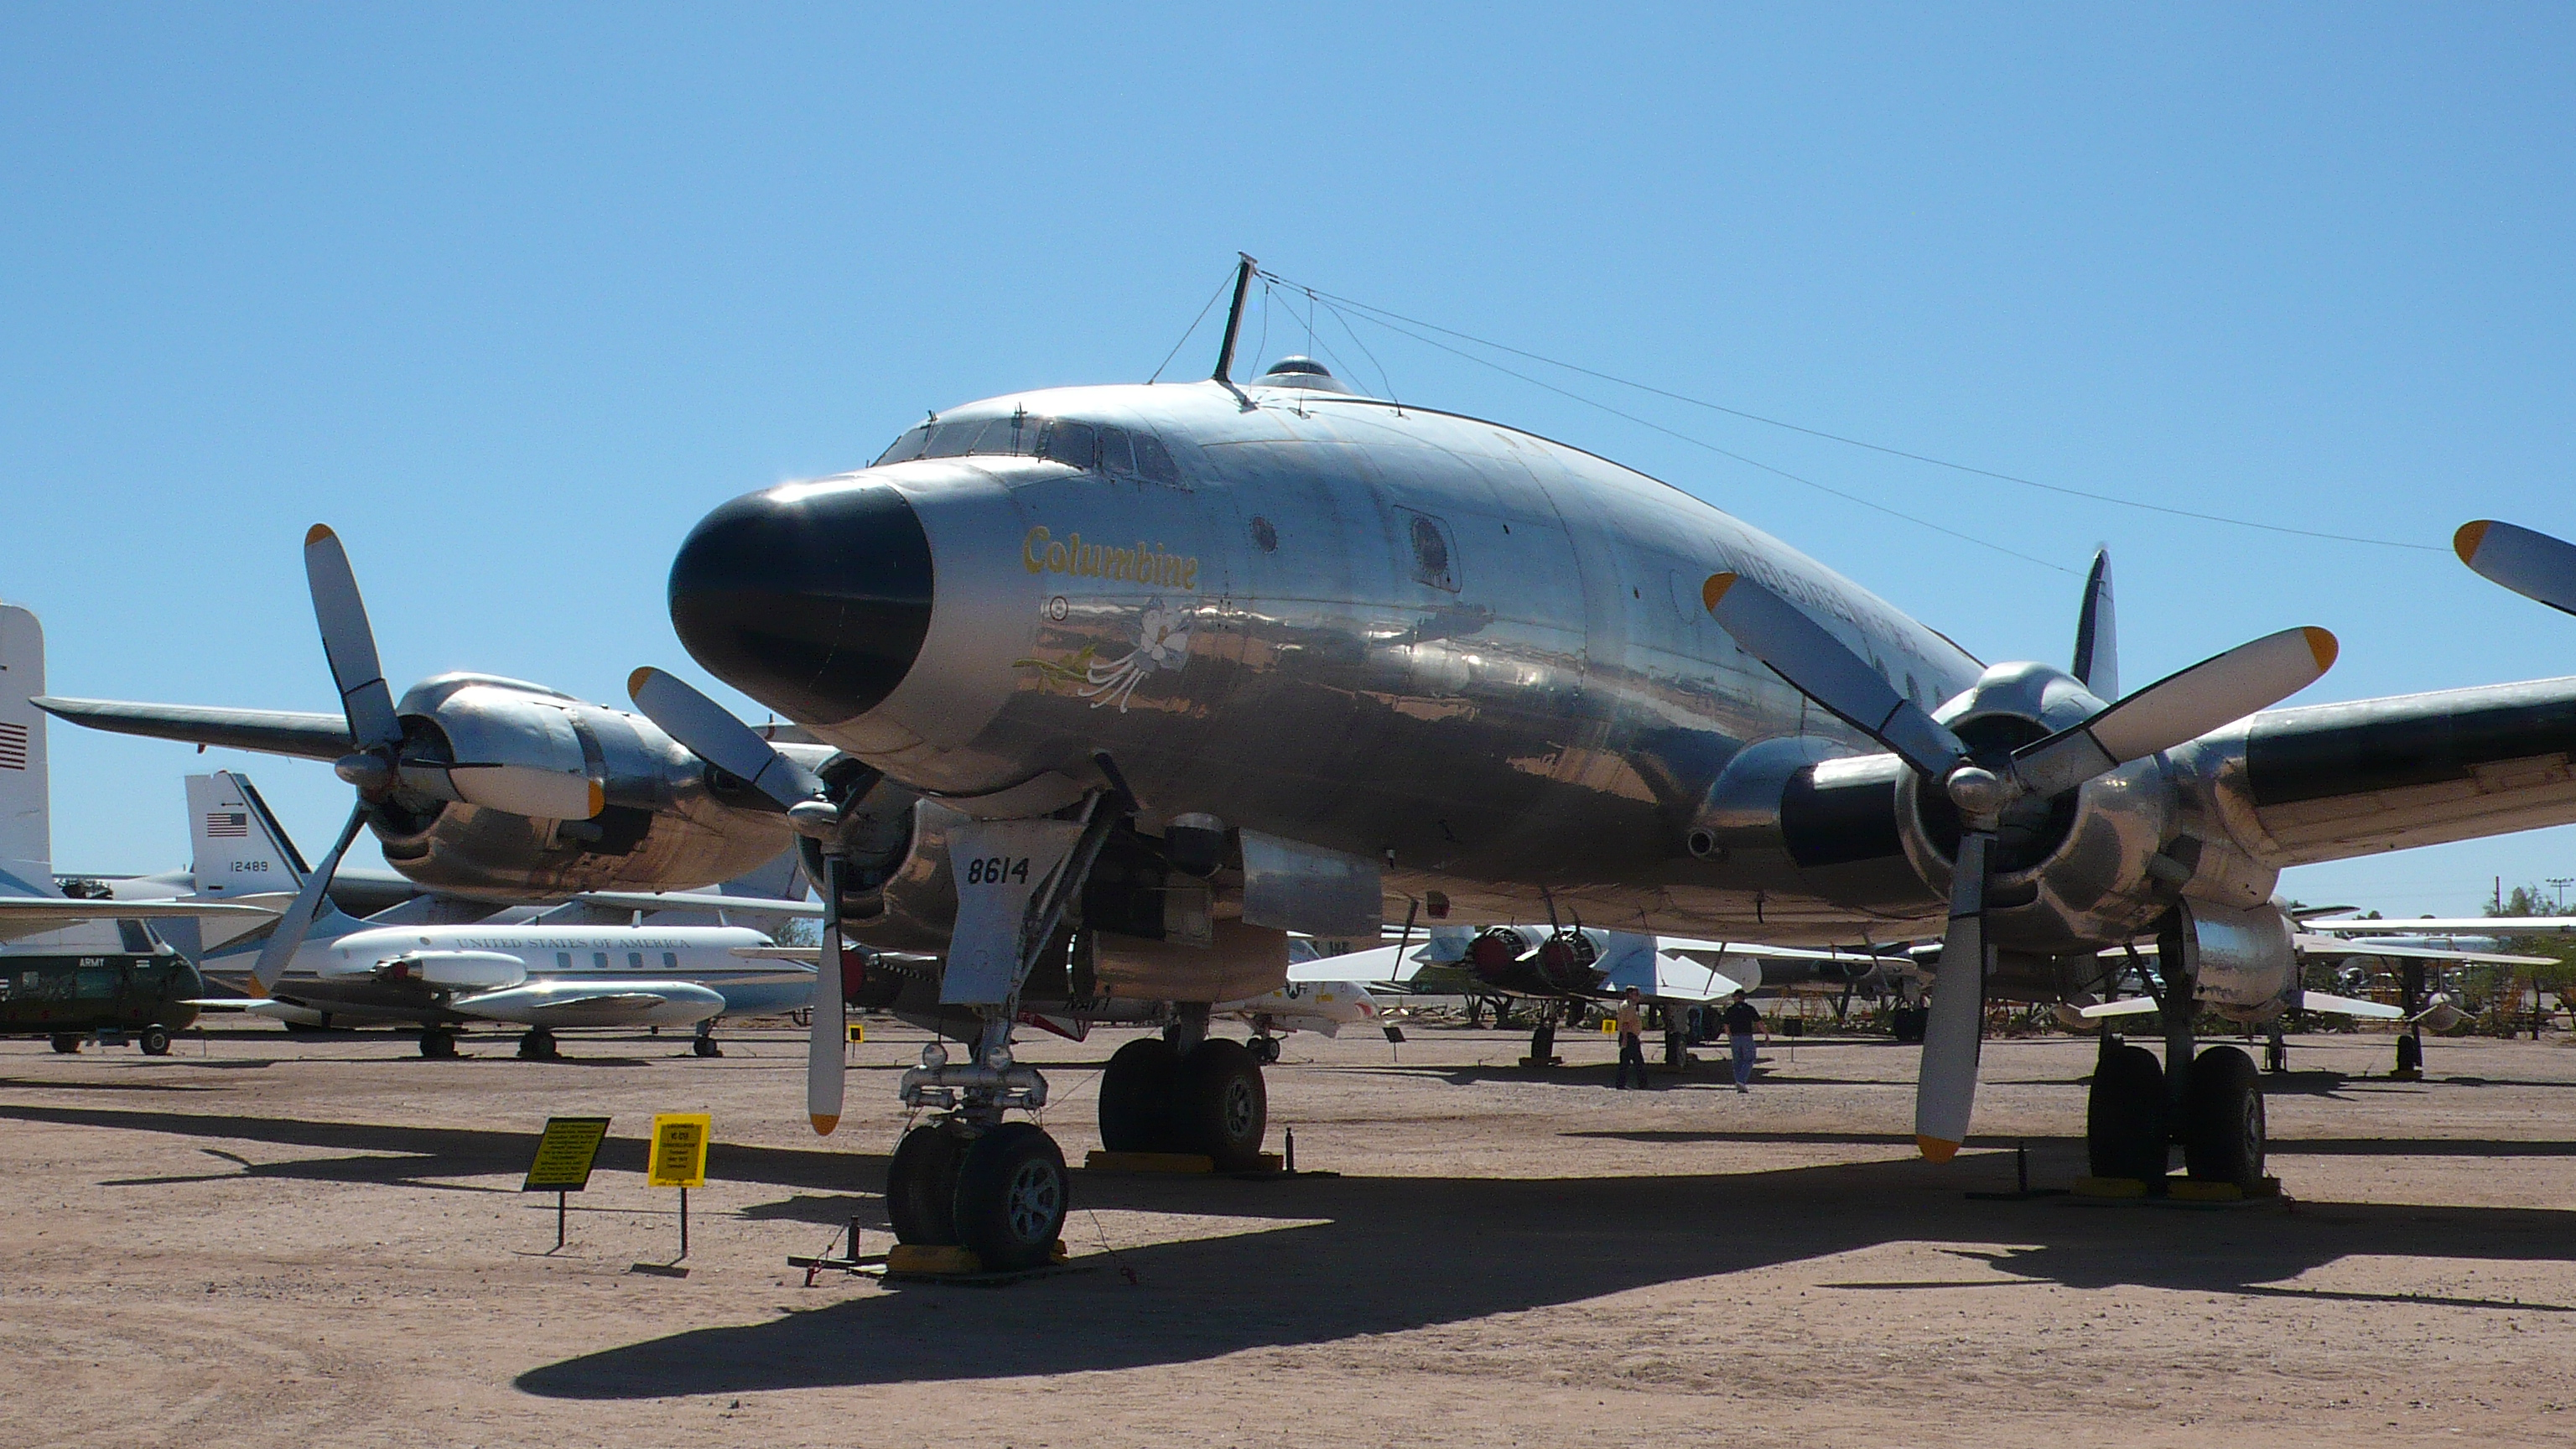 Pale de Superconstellation (vendue)